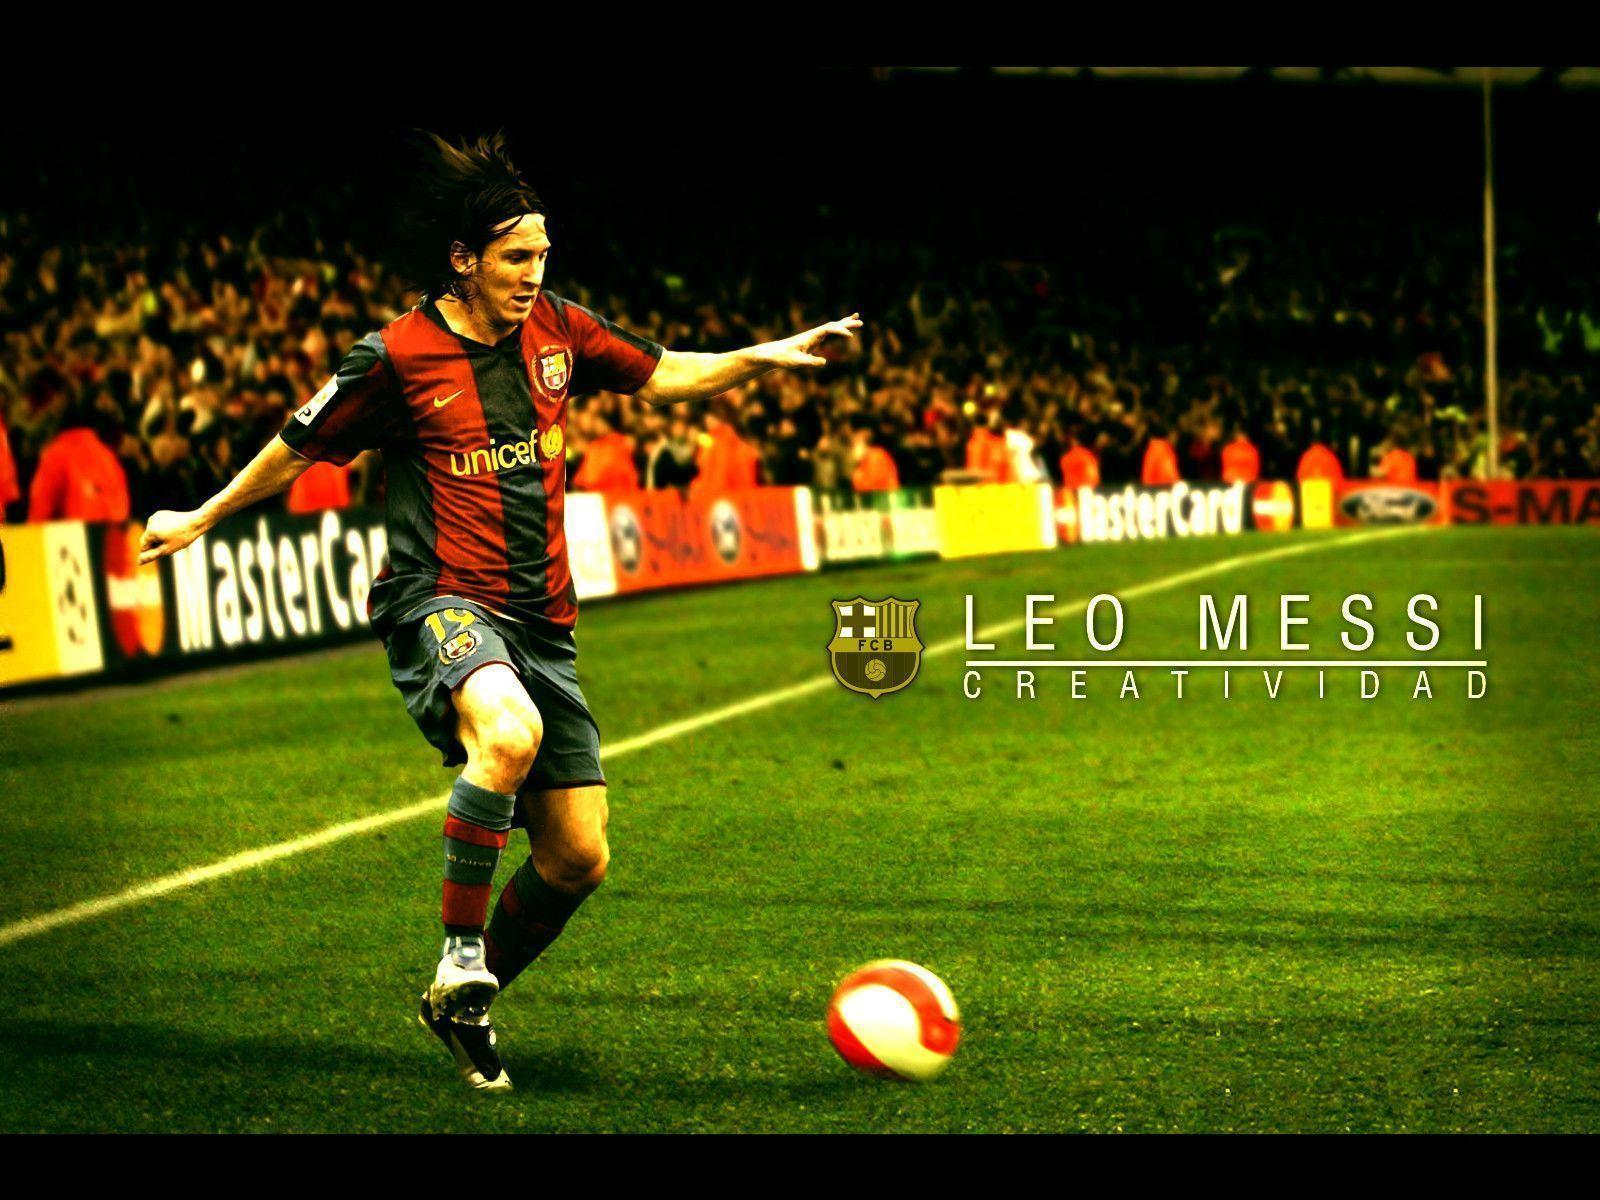 Lionel messi 2015 1080p hd wallpapers wallpaper cave for Home 2015 wallpaper hd